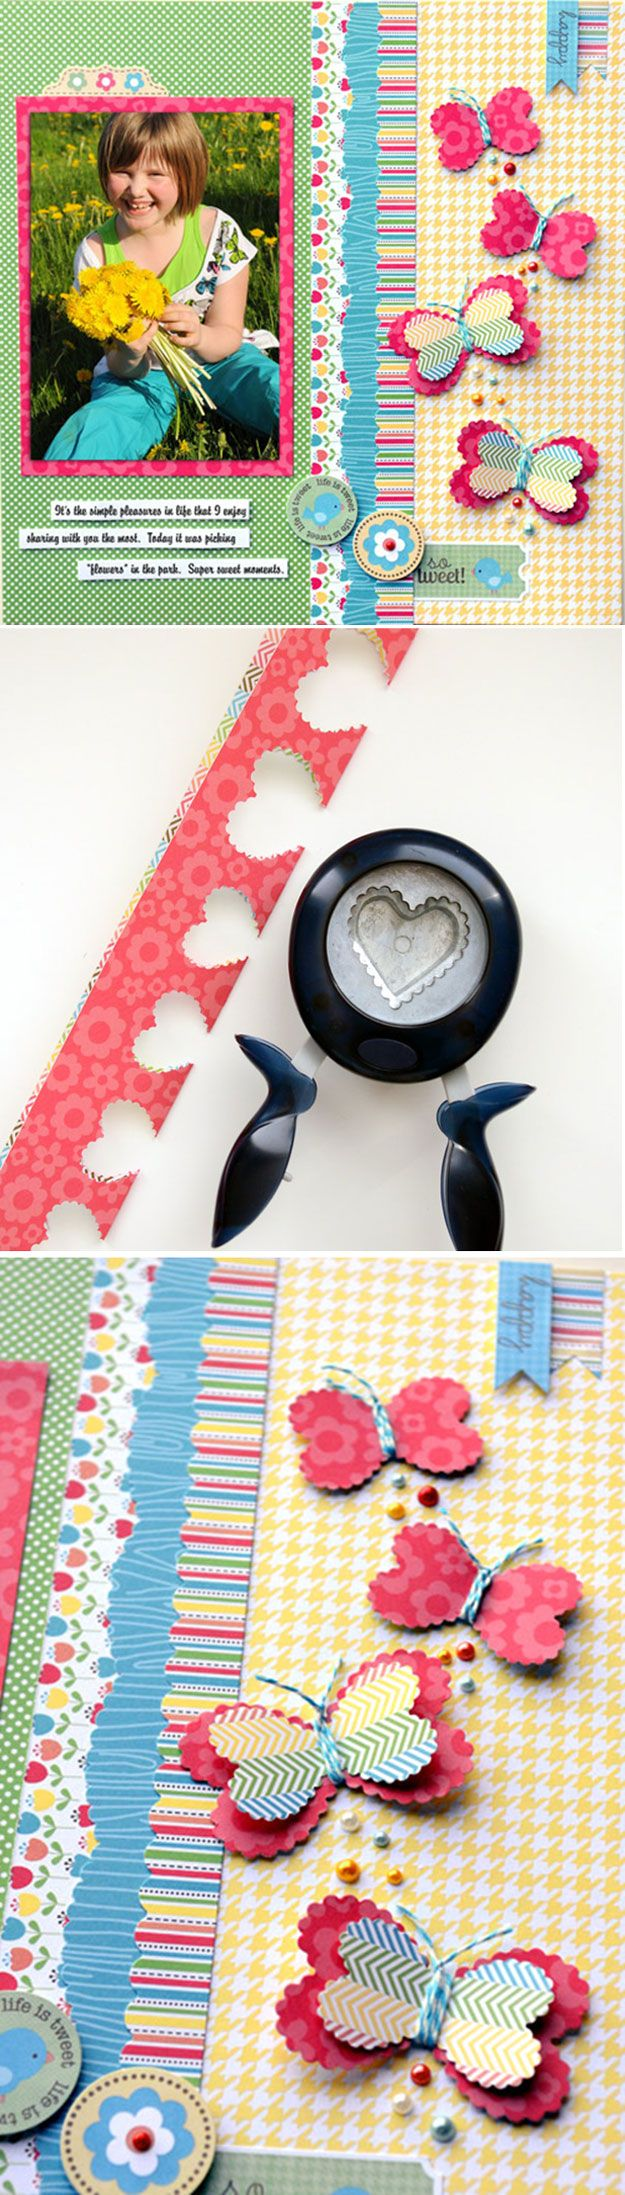 Scrapbook ideas recycled - 33 Creative Scrapbook Ideas Every Crafter Should Know